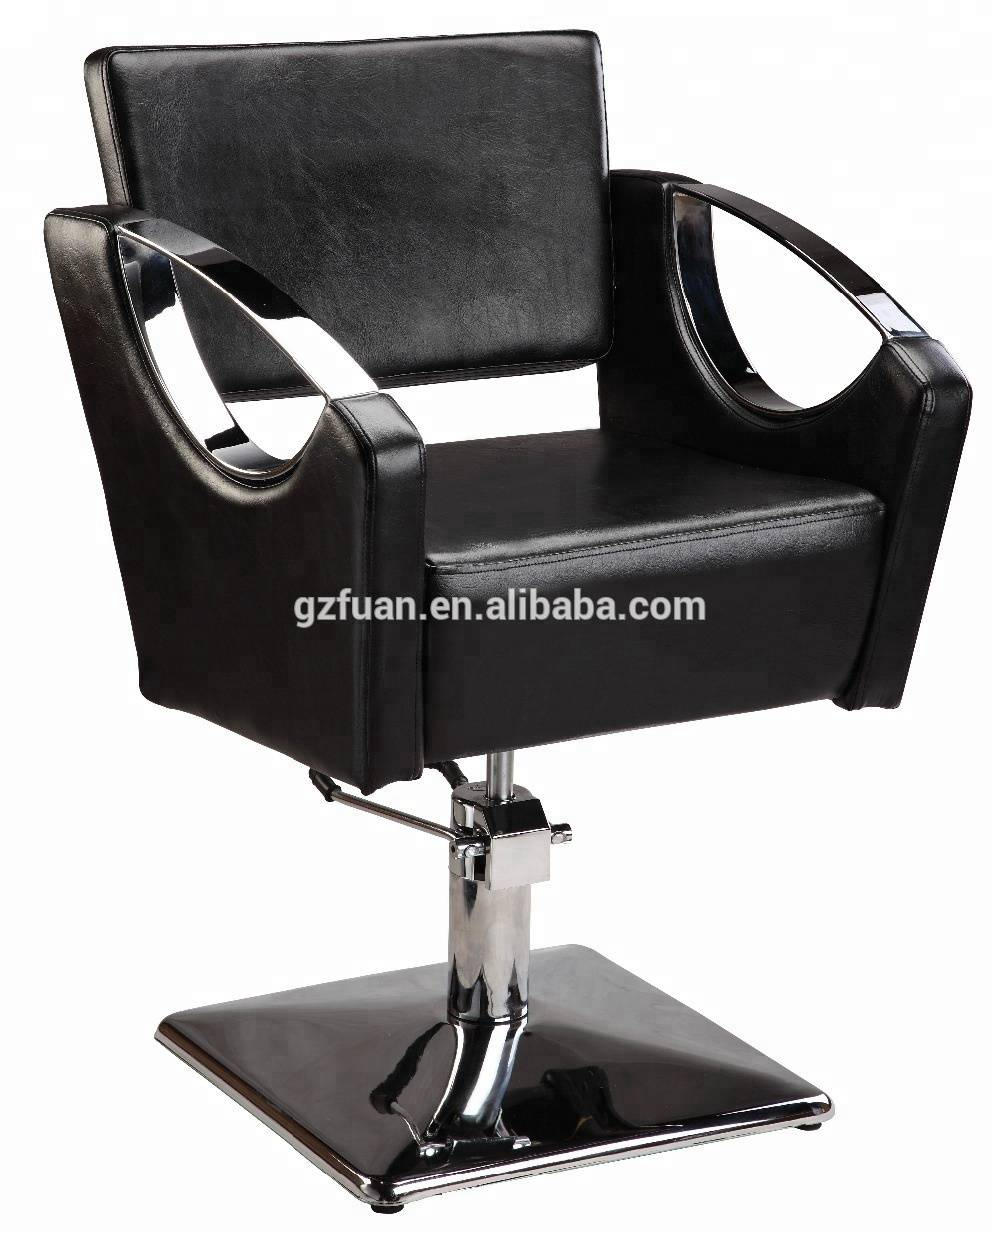 hair salon furniture portable hairdressing chair for sale MY-007-41